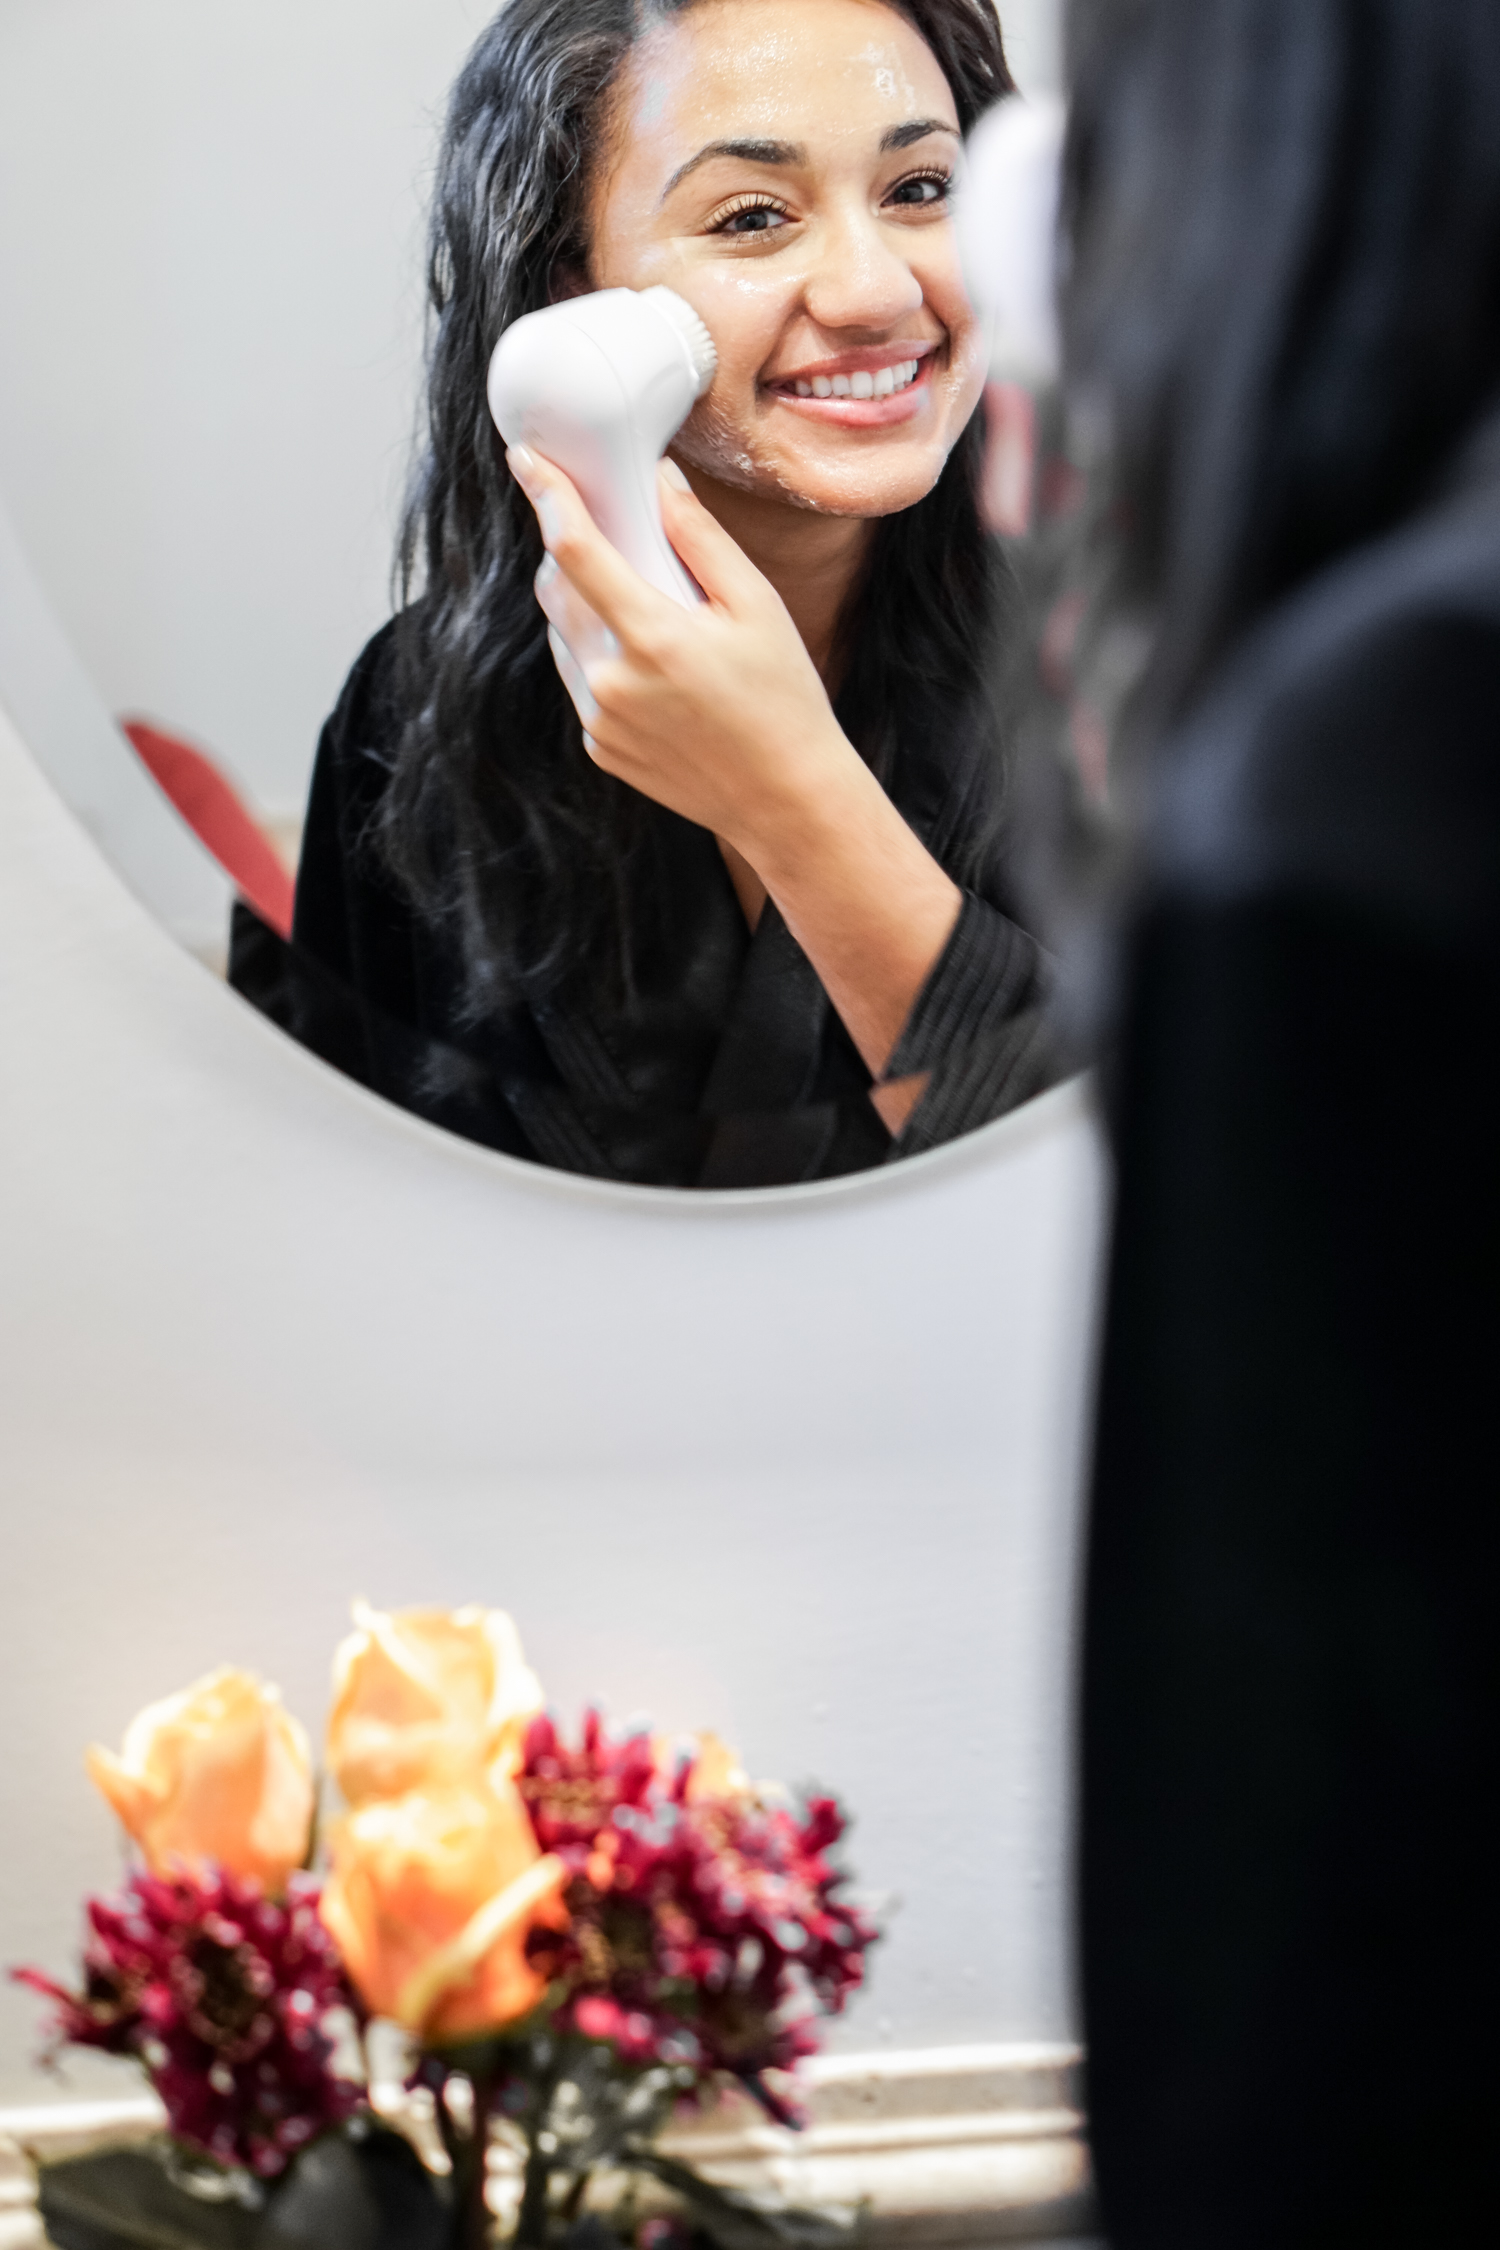 How to Get More Radiant Skin in 5 Easy Steps- Monique McHugh Blog